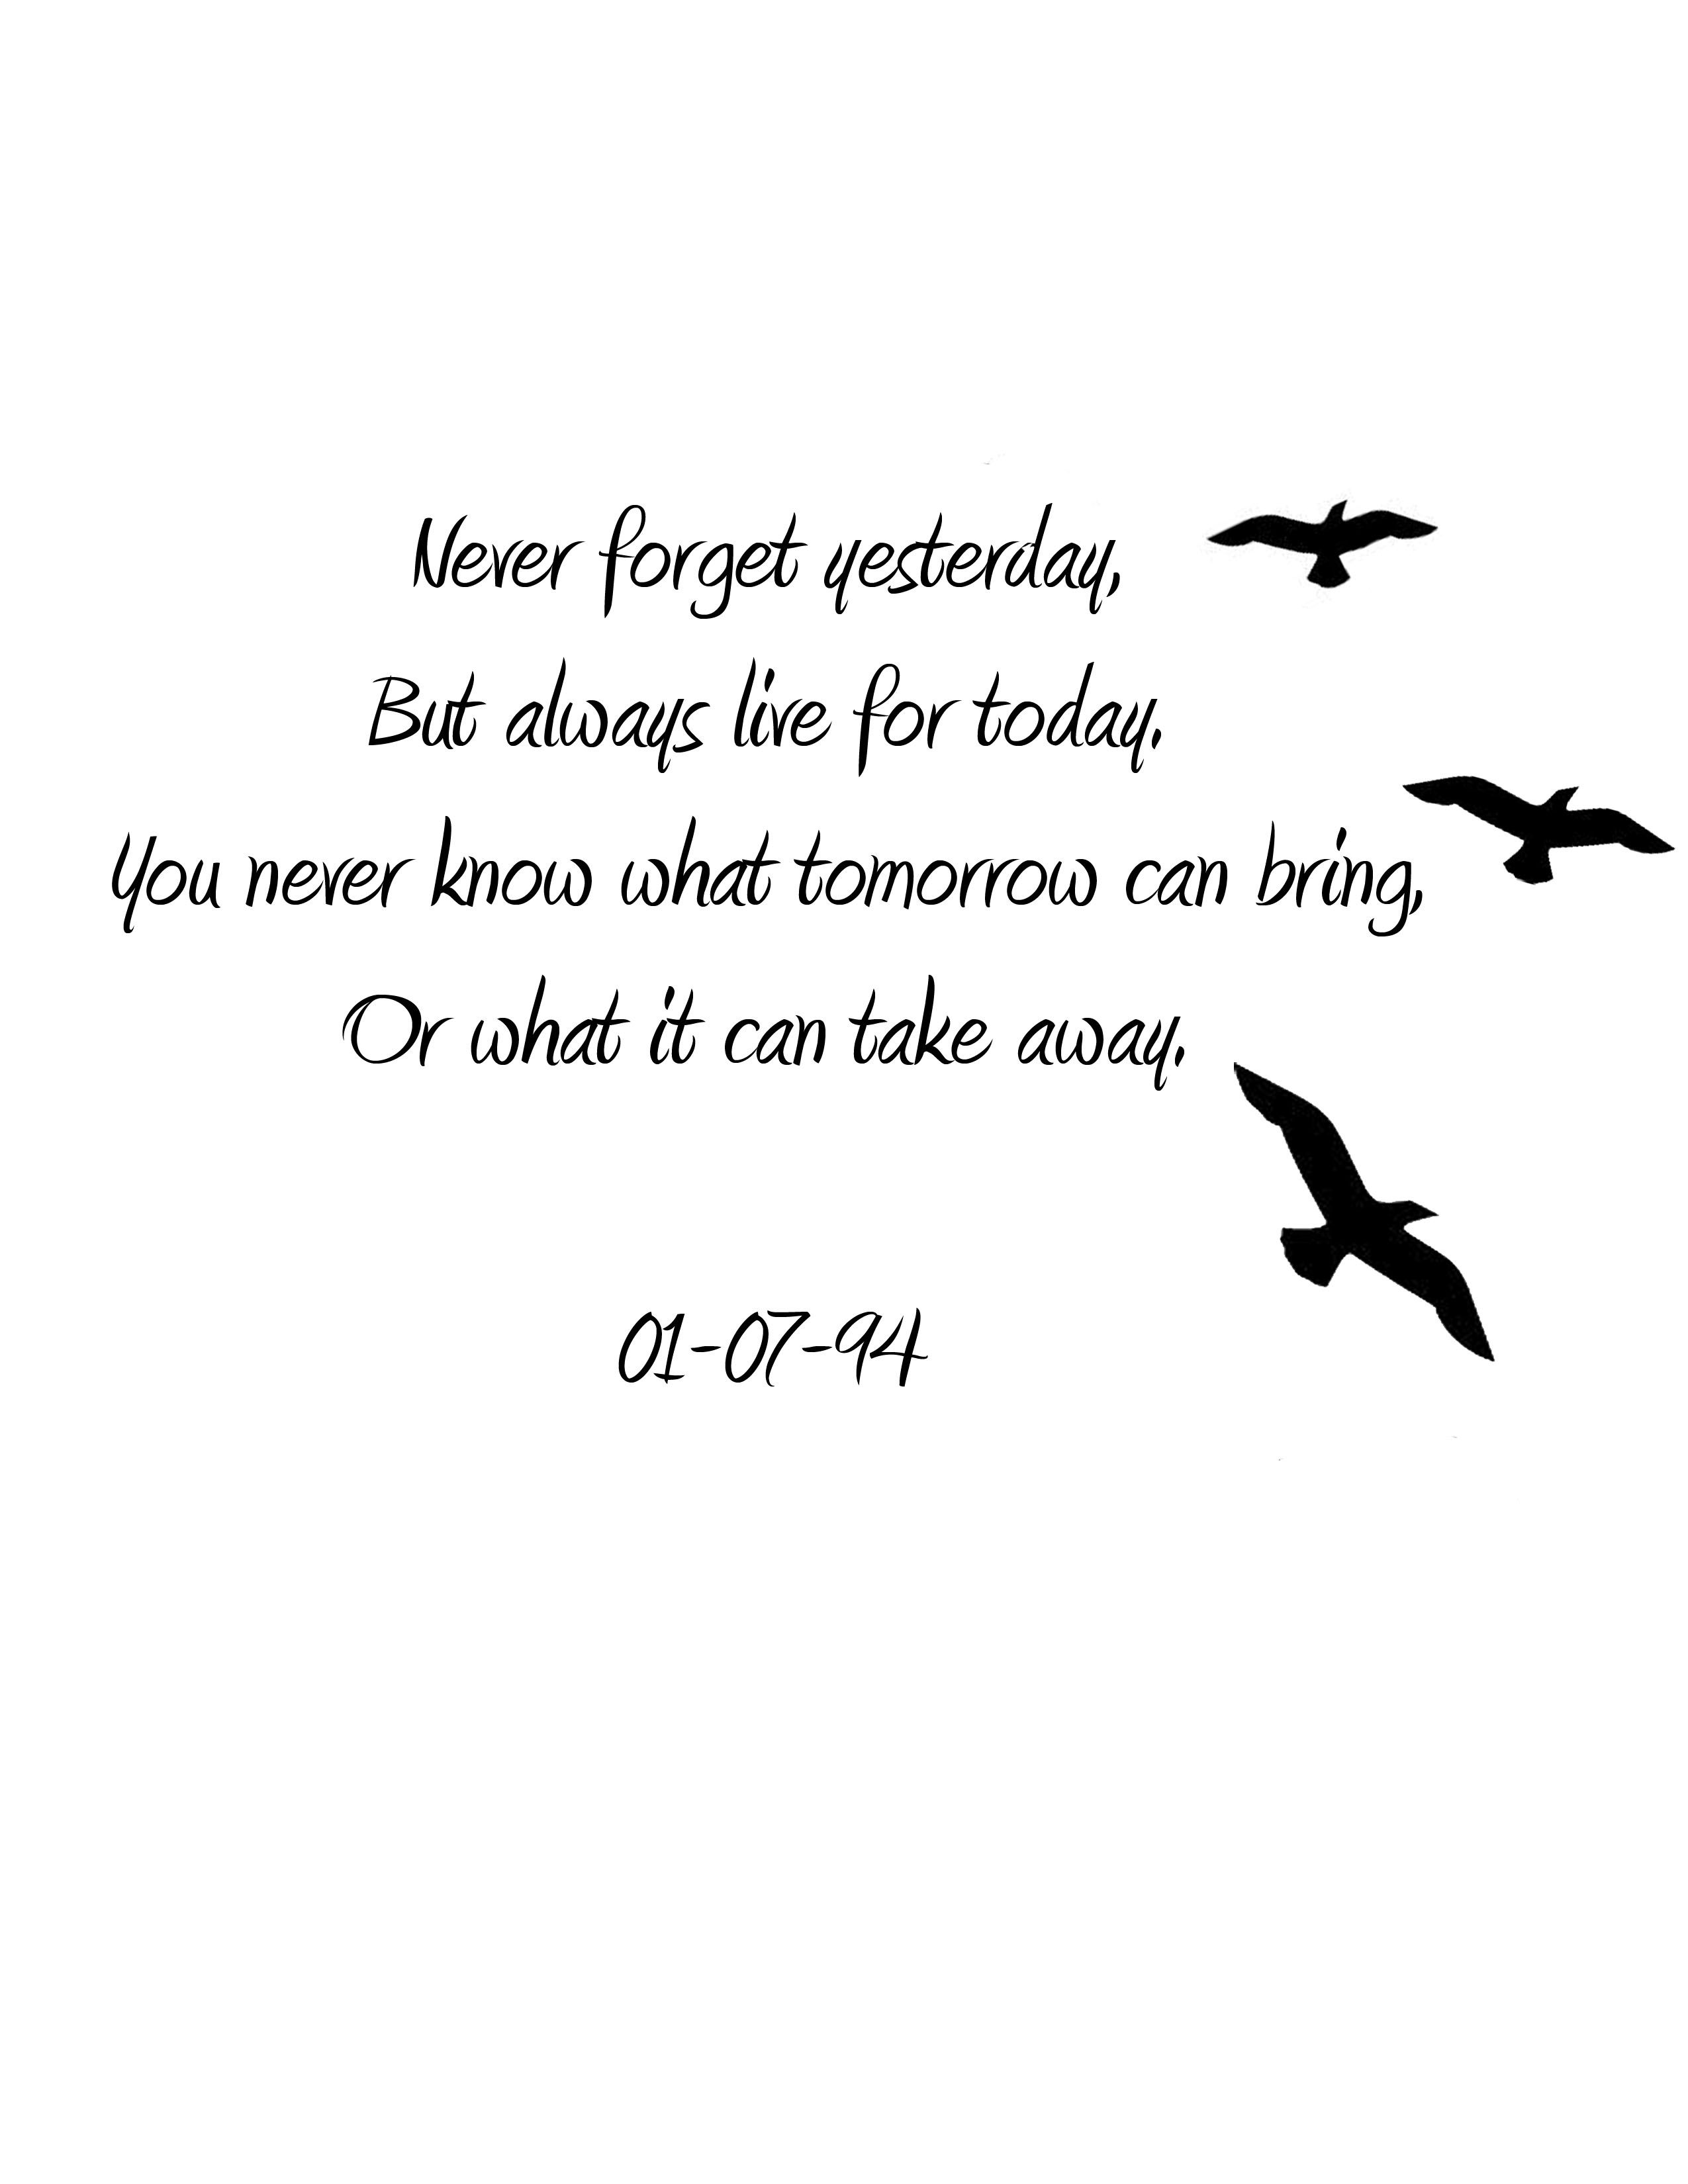 In Remembrance Quotes Of A Loved One Never Forget Yesterday Bur Always Live For Todayyou Never Know